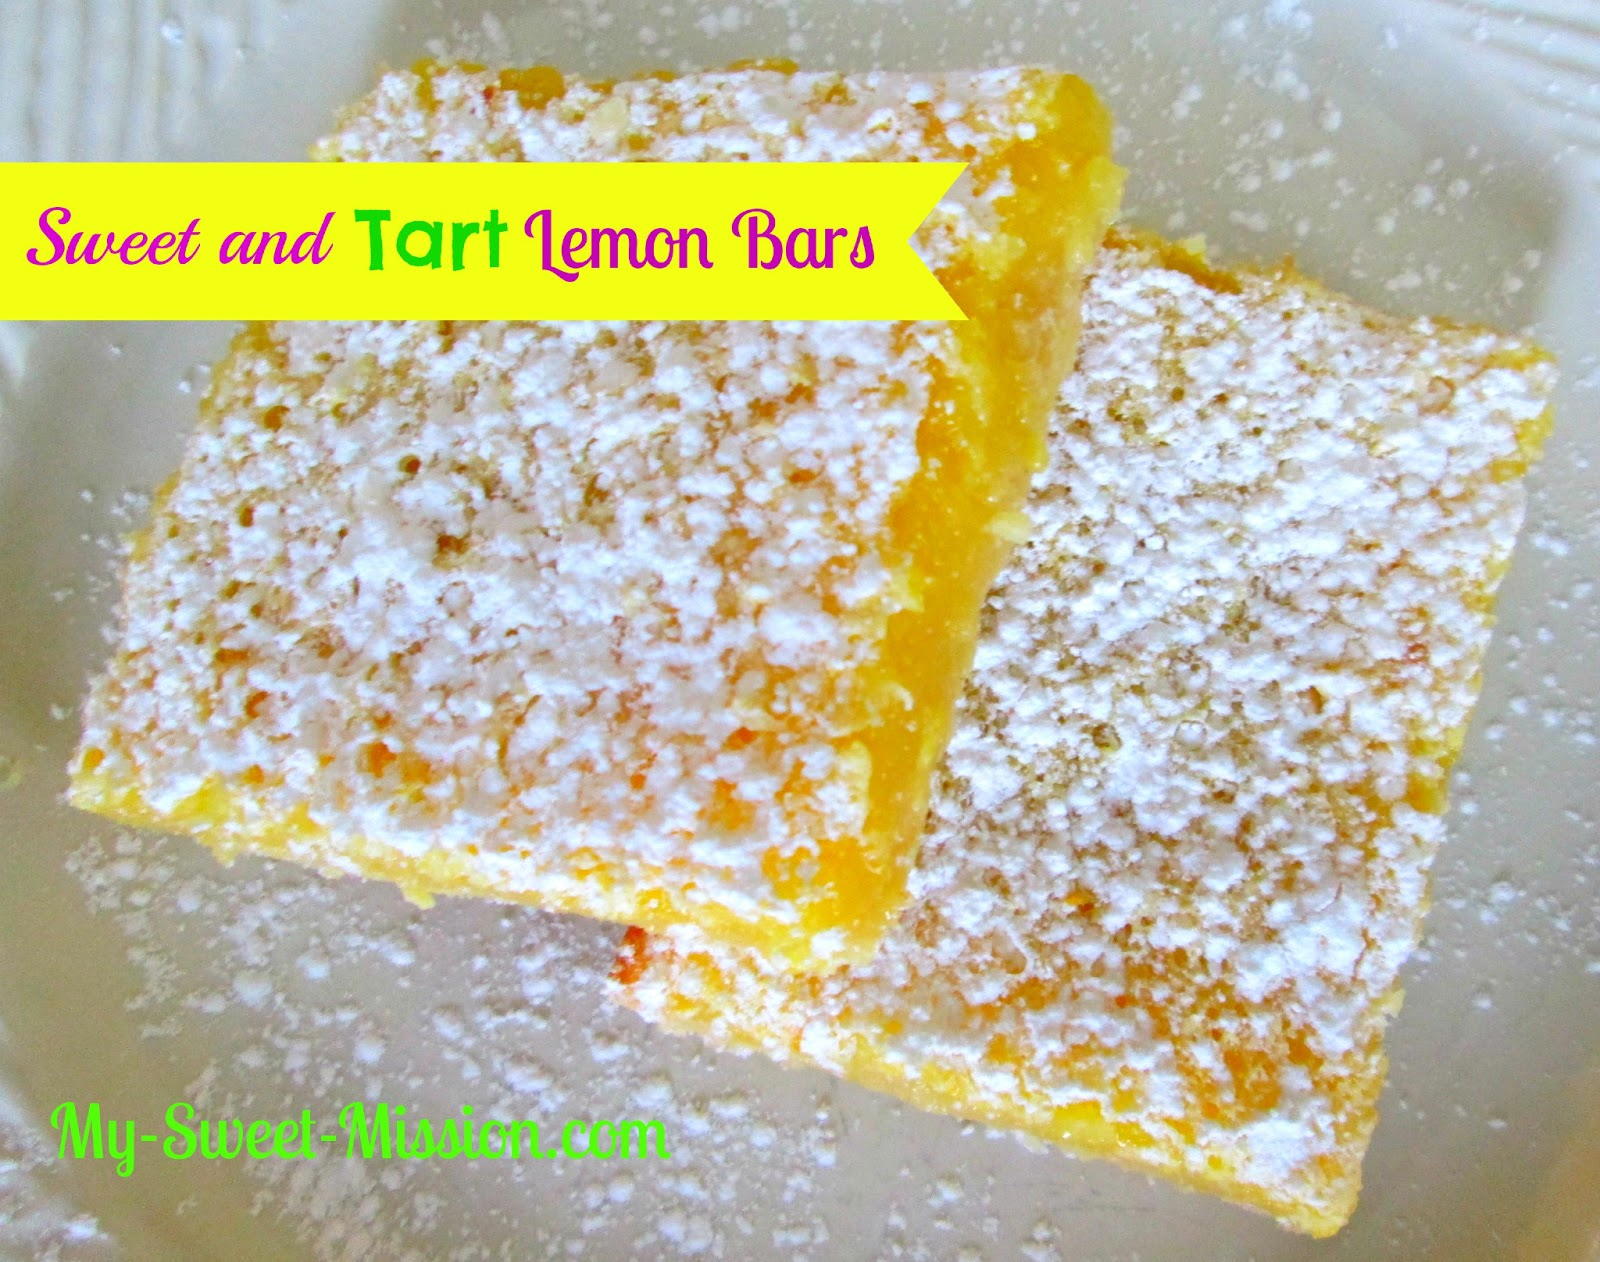 Sweet and Tart Lemon Bars by My Sweet Mission